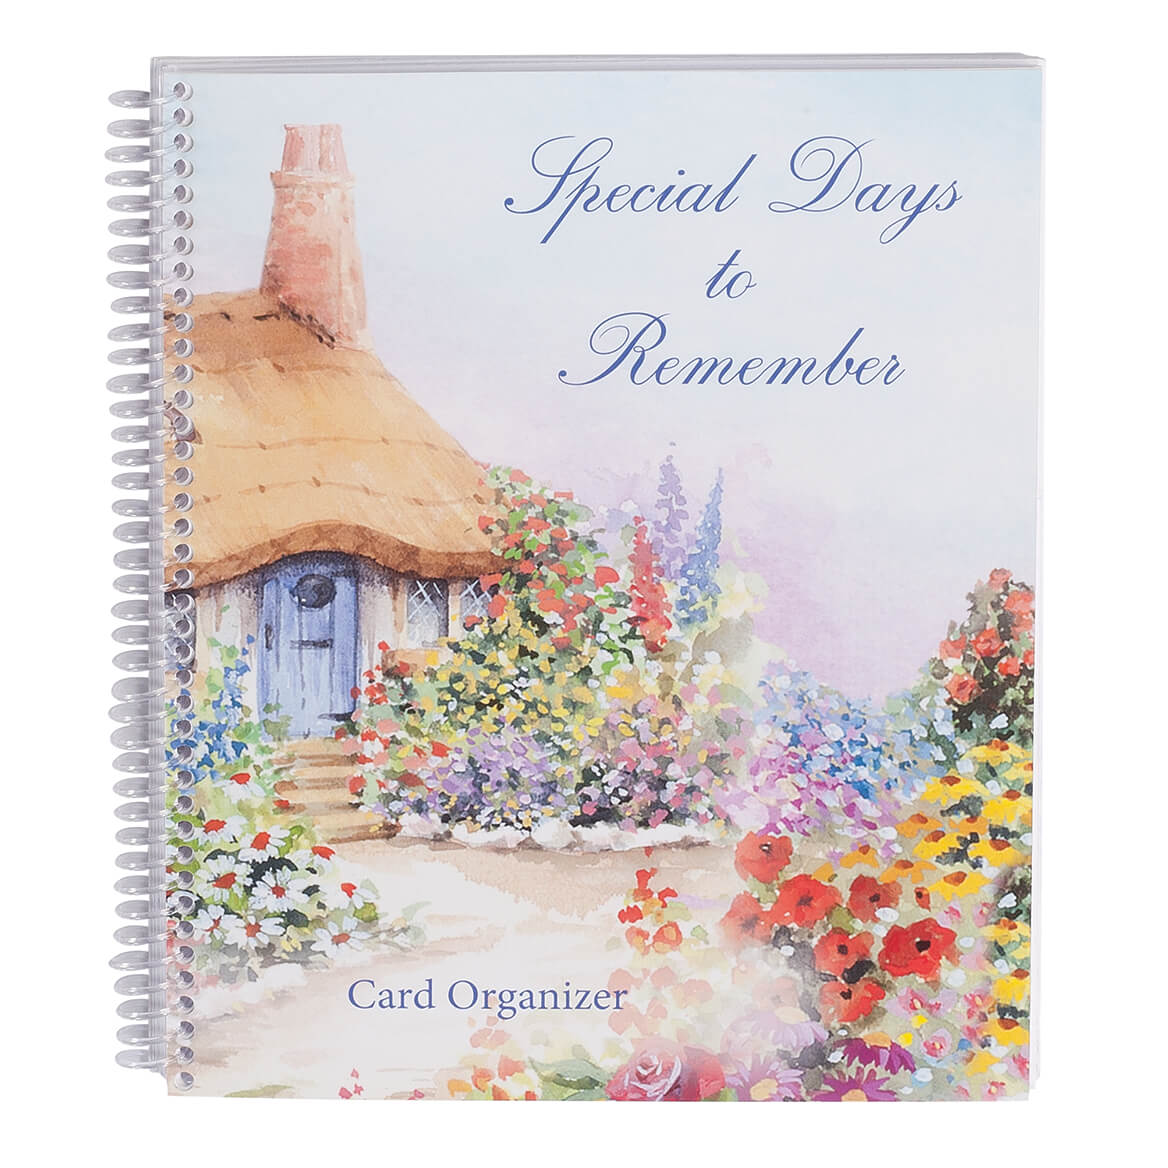 Greeting Cards Organizer - Reusable Card Storage - Never Forget Birthdays, Anniversaries, and Weddings - Spiralbound Book- 8 1/4 in. Wide by 9 ½ in. High- Cottage Design